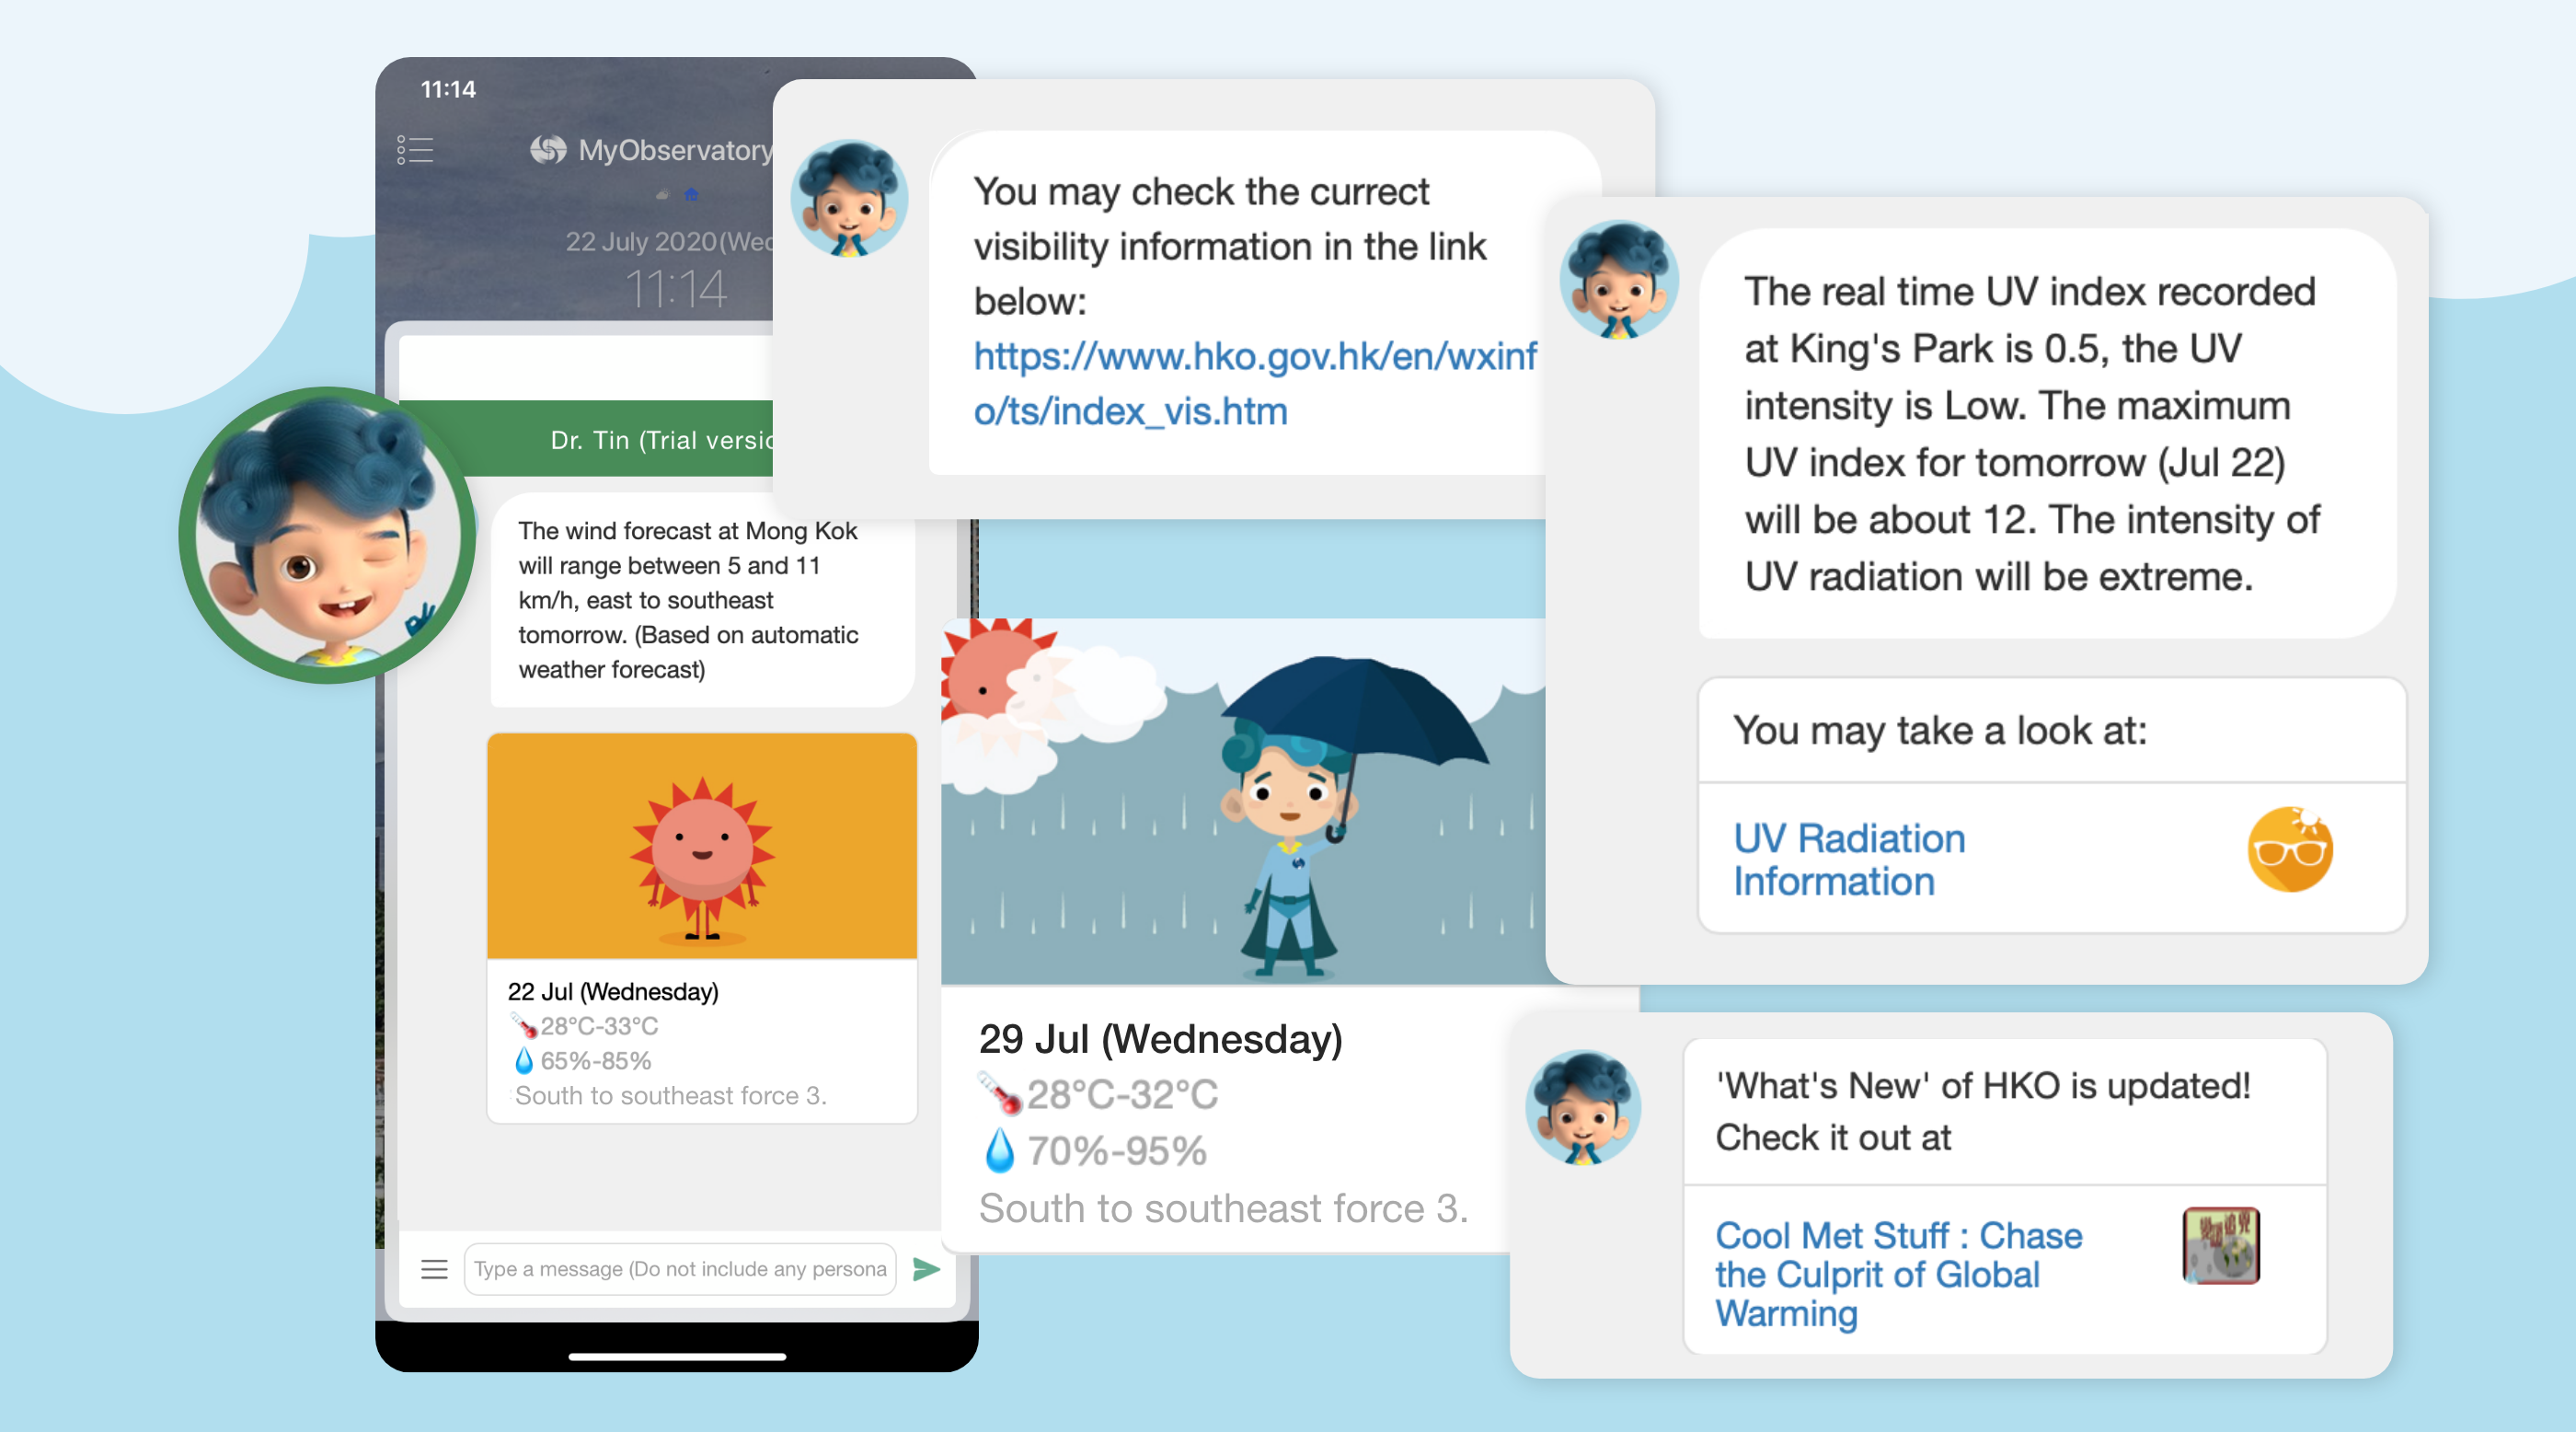 More information provided in 'Dr Tin' Chatbot Service